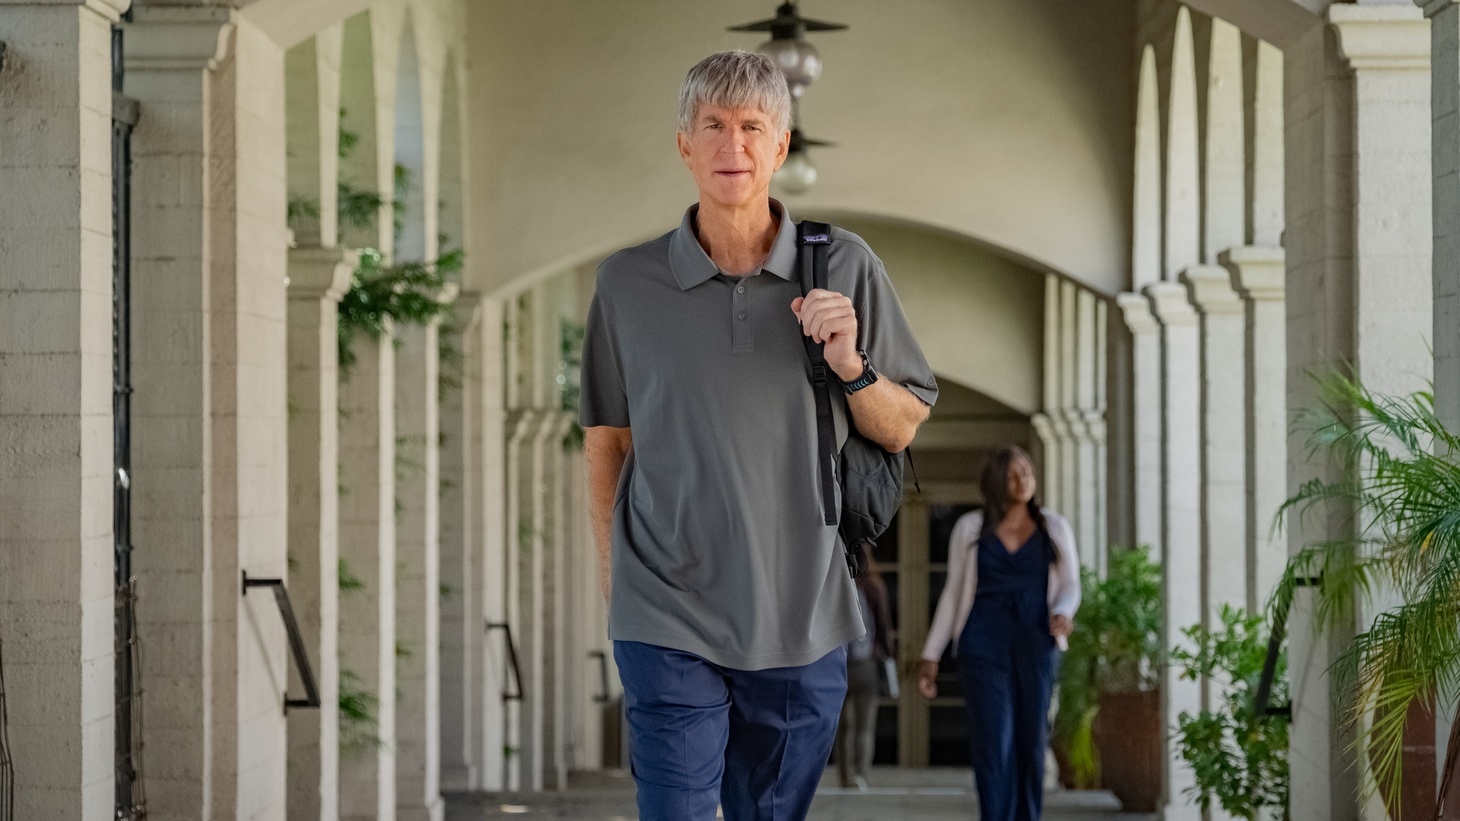 """Matthew Modine as William """"Rick"""" Singer in """"Operation Varsity Blues: The College Admissions Scandal."""""""